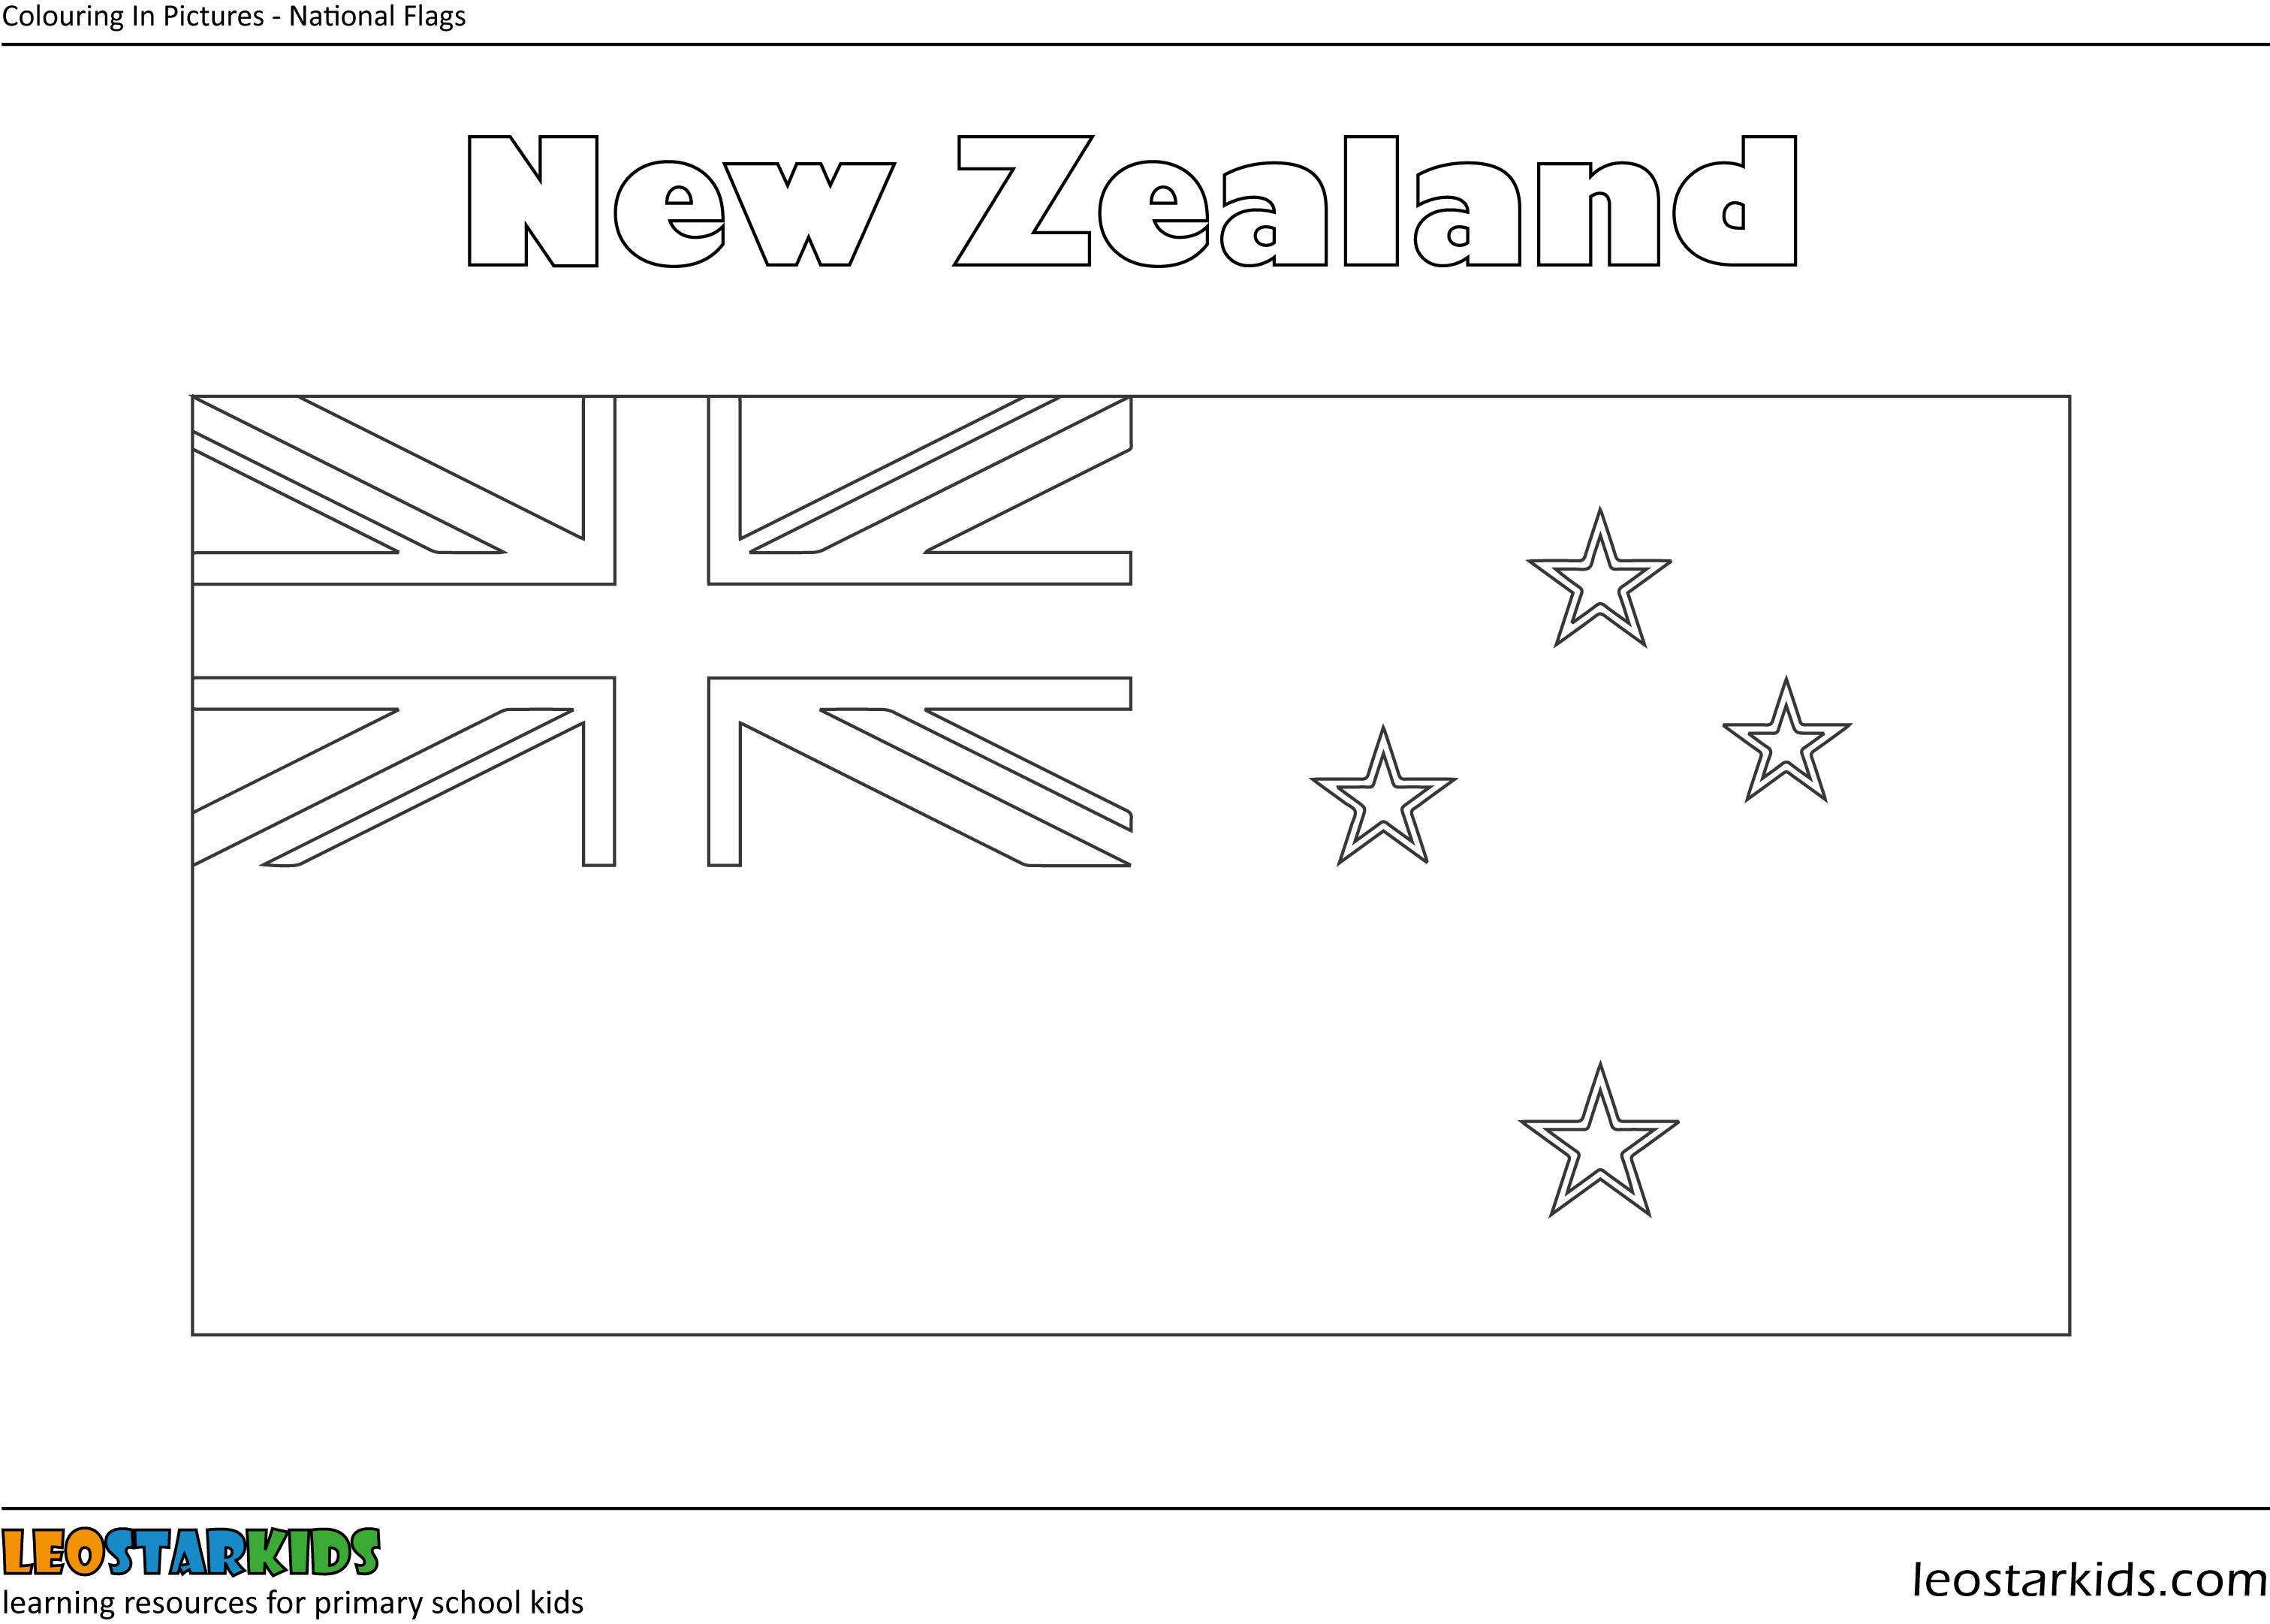 Colouring In New Zealand Flag